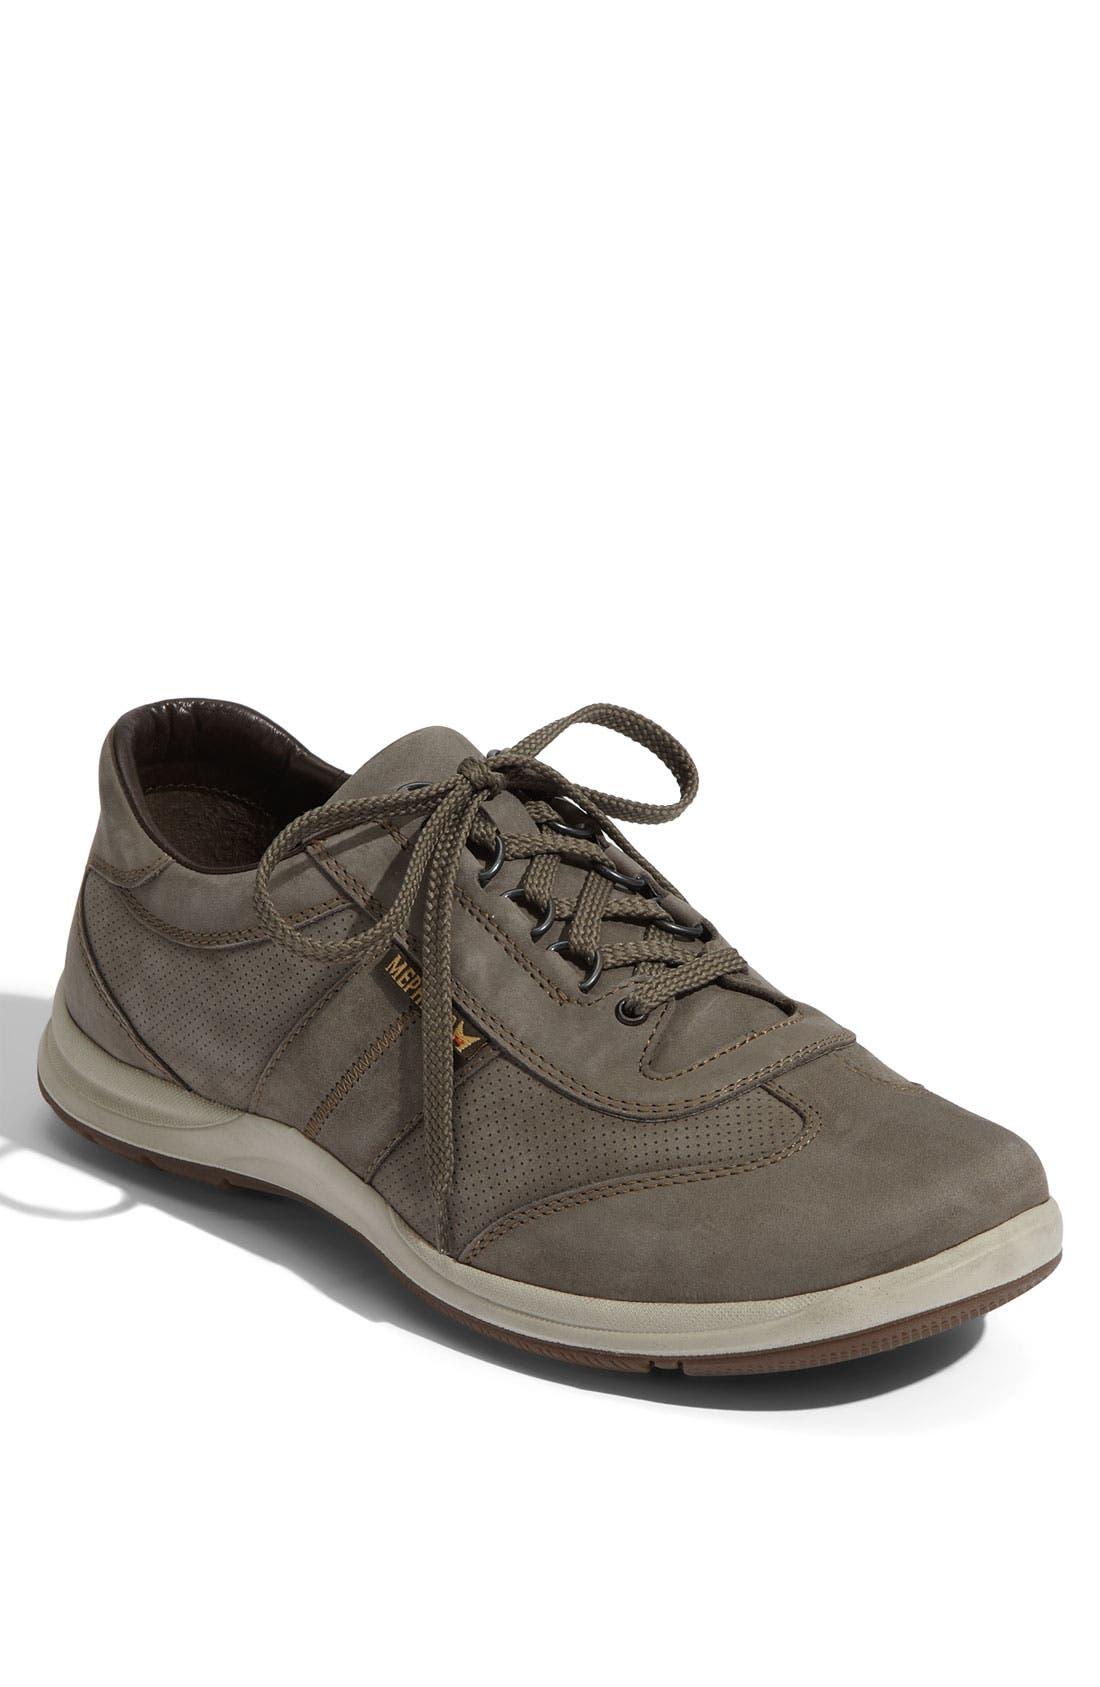 Mephisto 'Hike' Perforated Walking Shoe (Men)